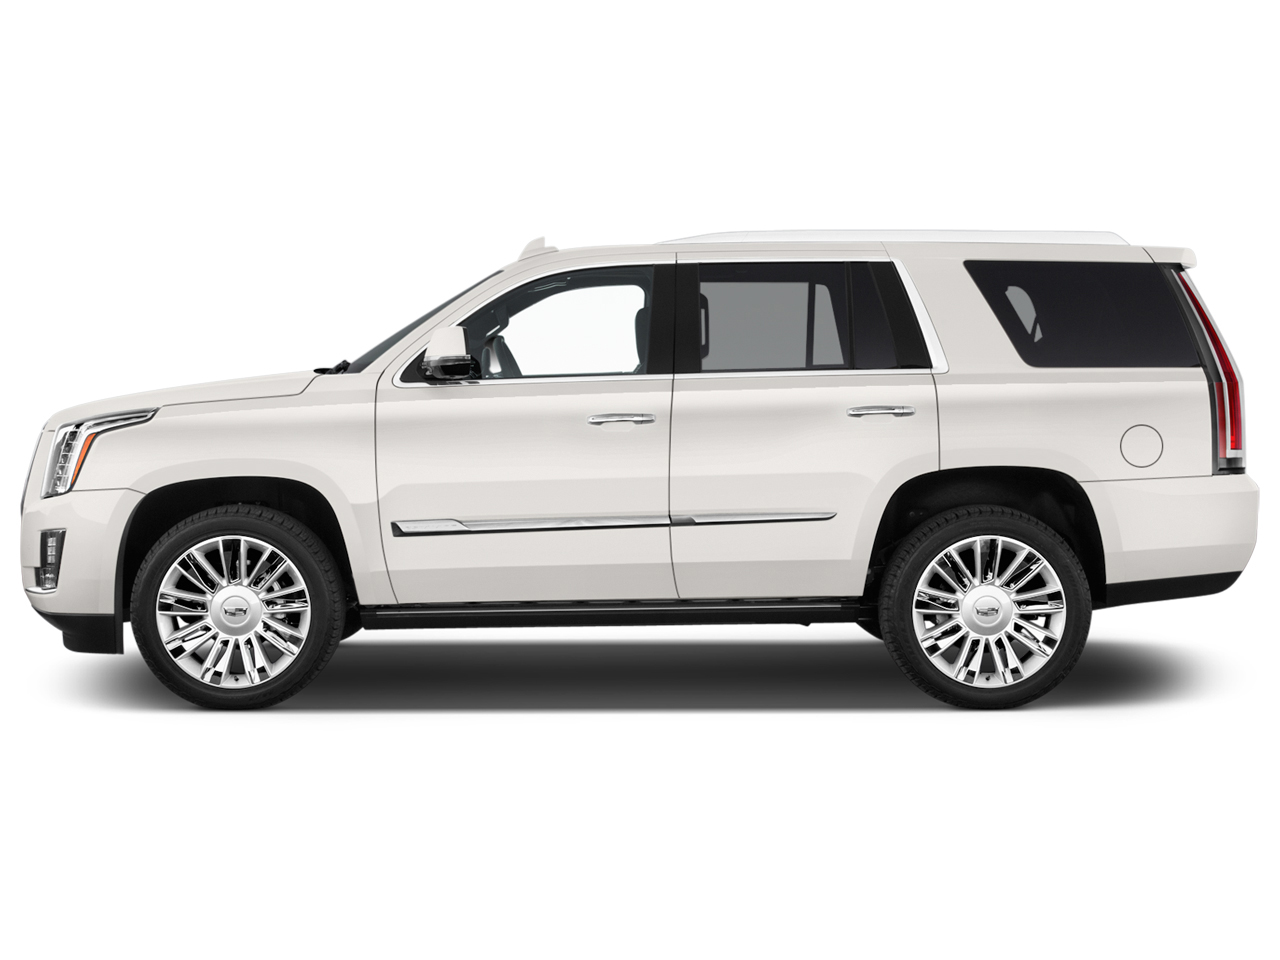 2012 Cadillac Escalade Platinum For Sale >> 2018 Cadillac Escalade Review, Ratings, Specs, Prices, and ...